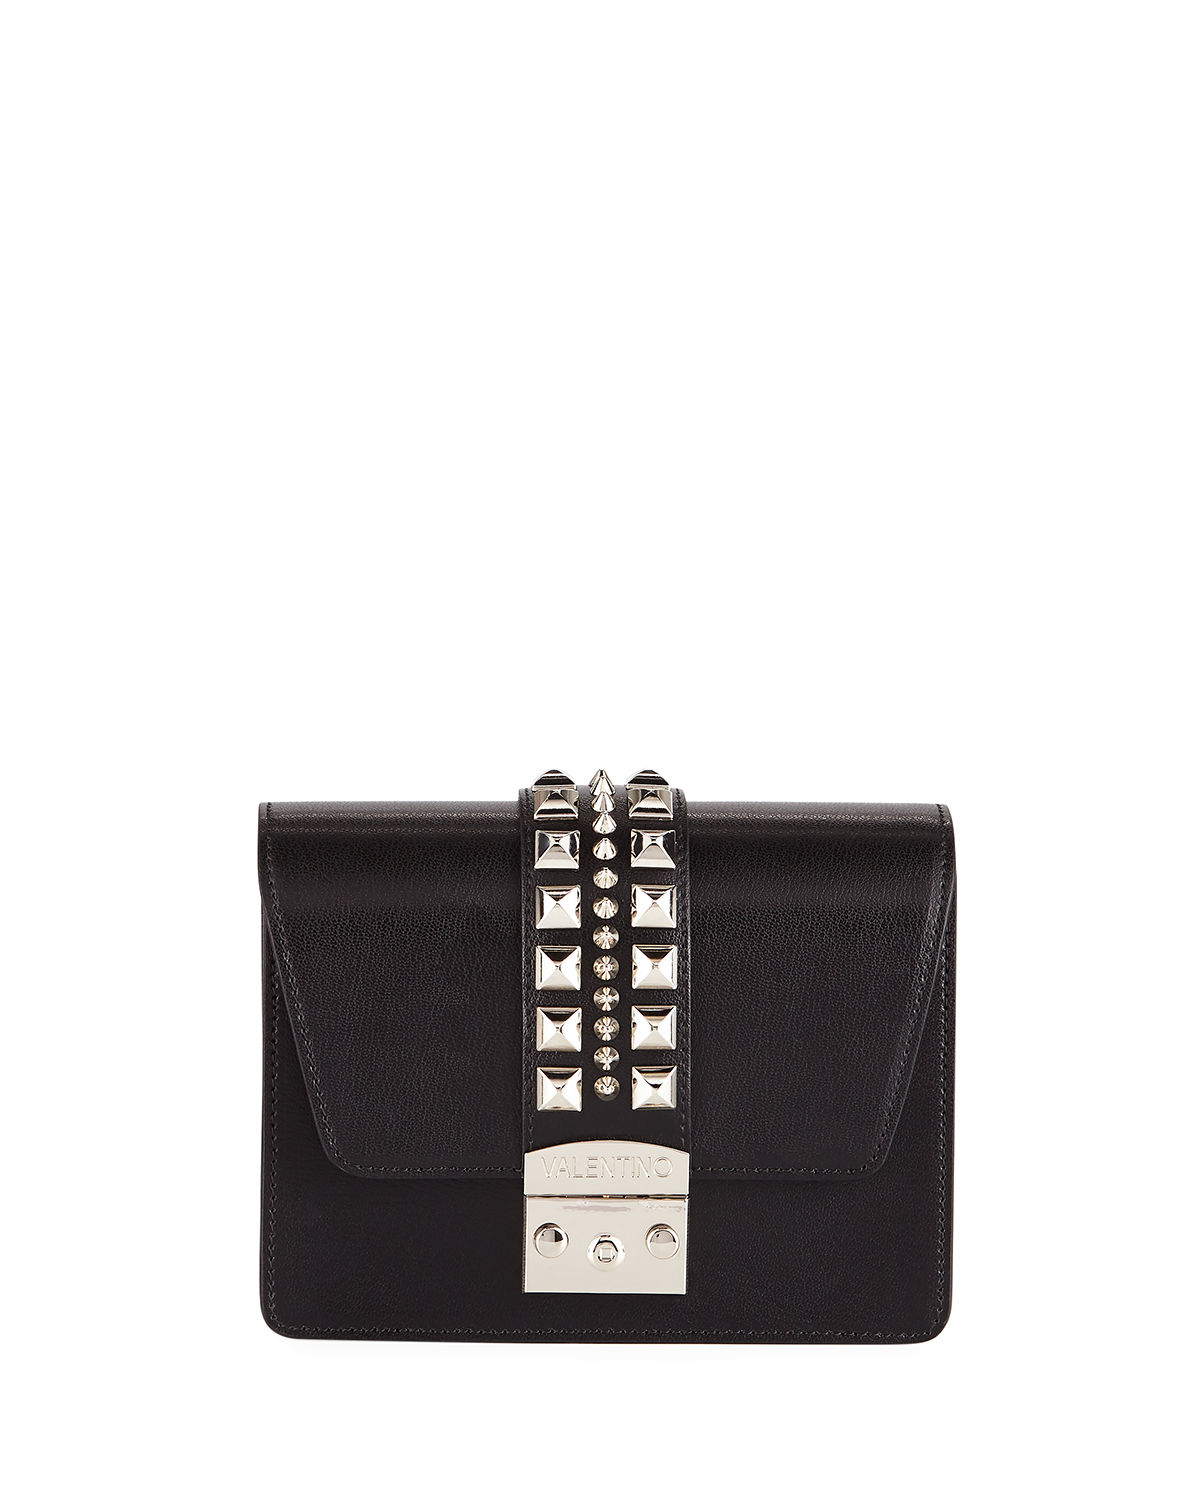 Valentino By Mario Valentino BENEDICTE MADRAS STUDDED LEATHER FLAP TOP BAG